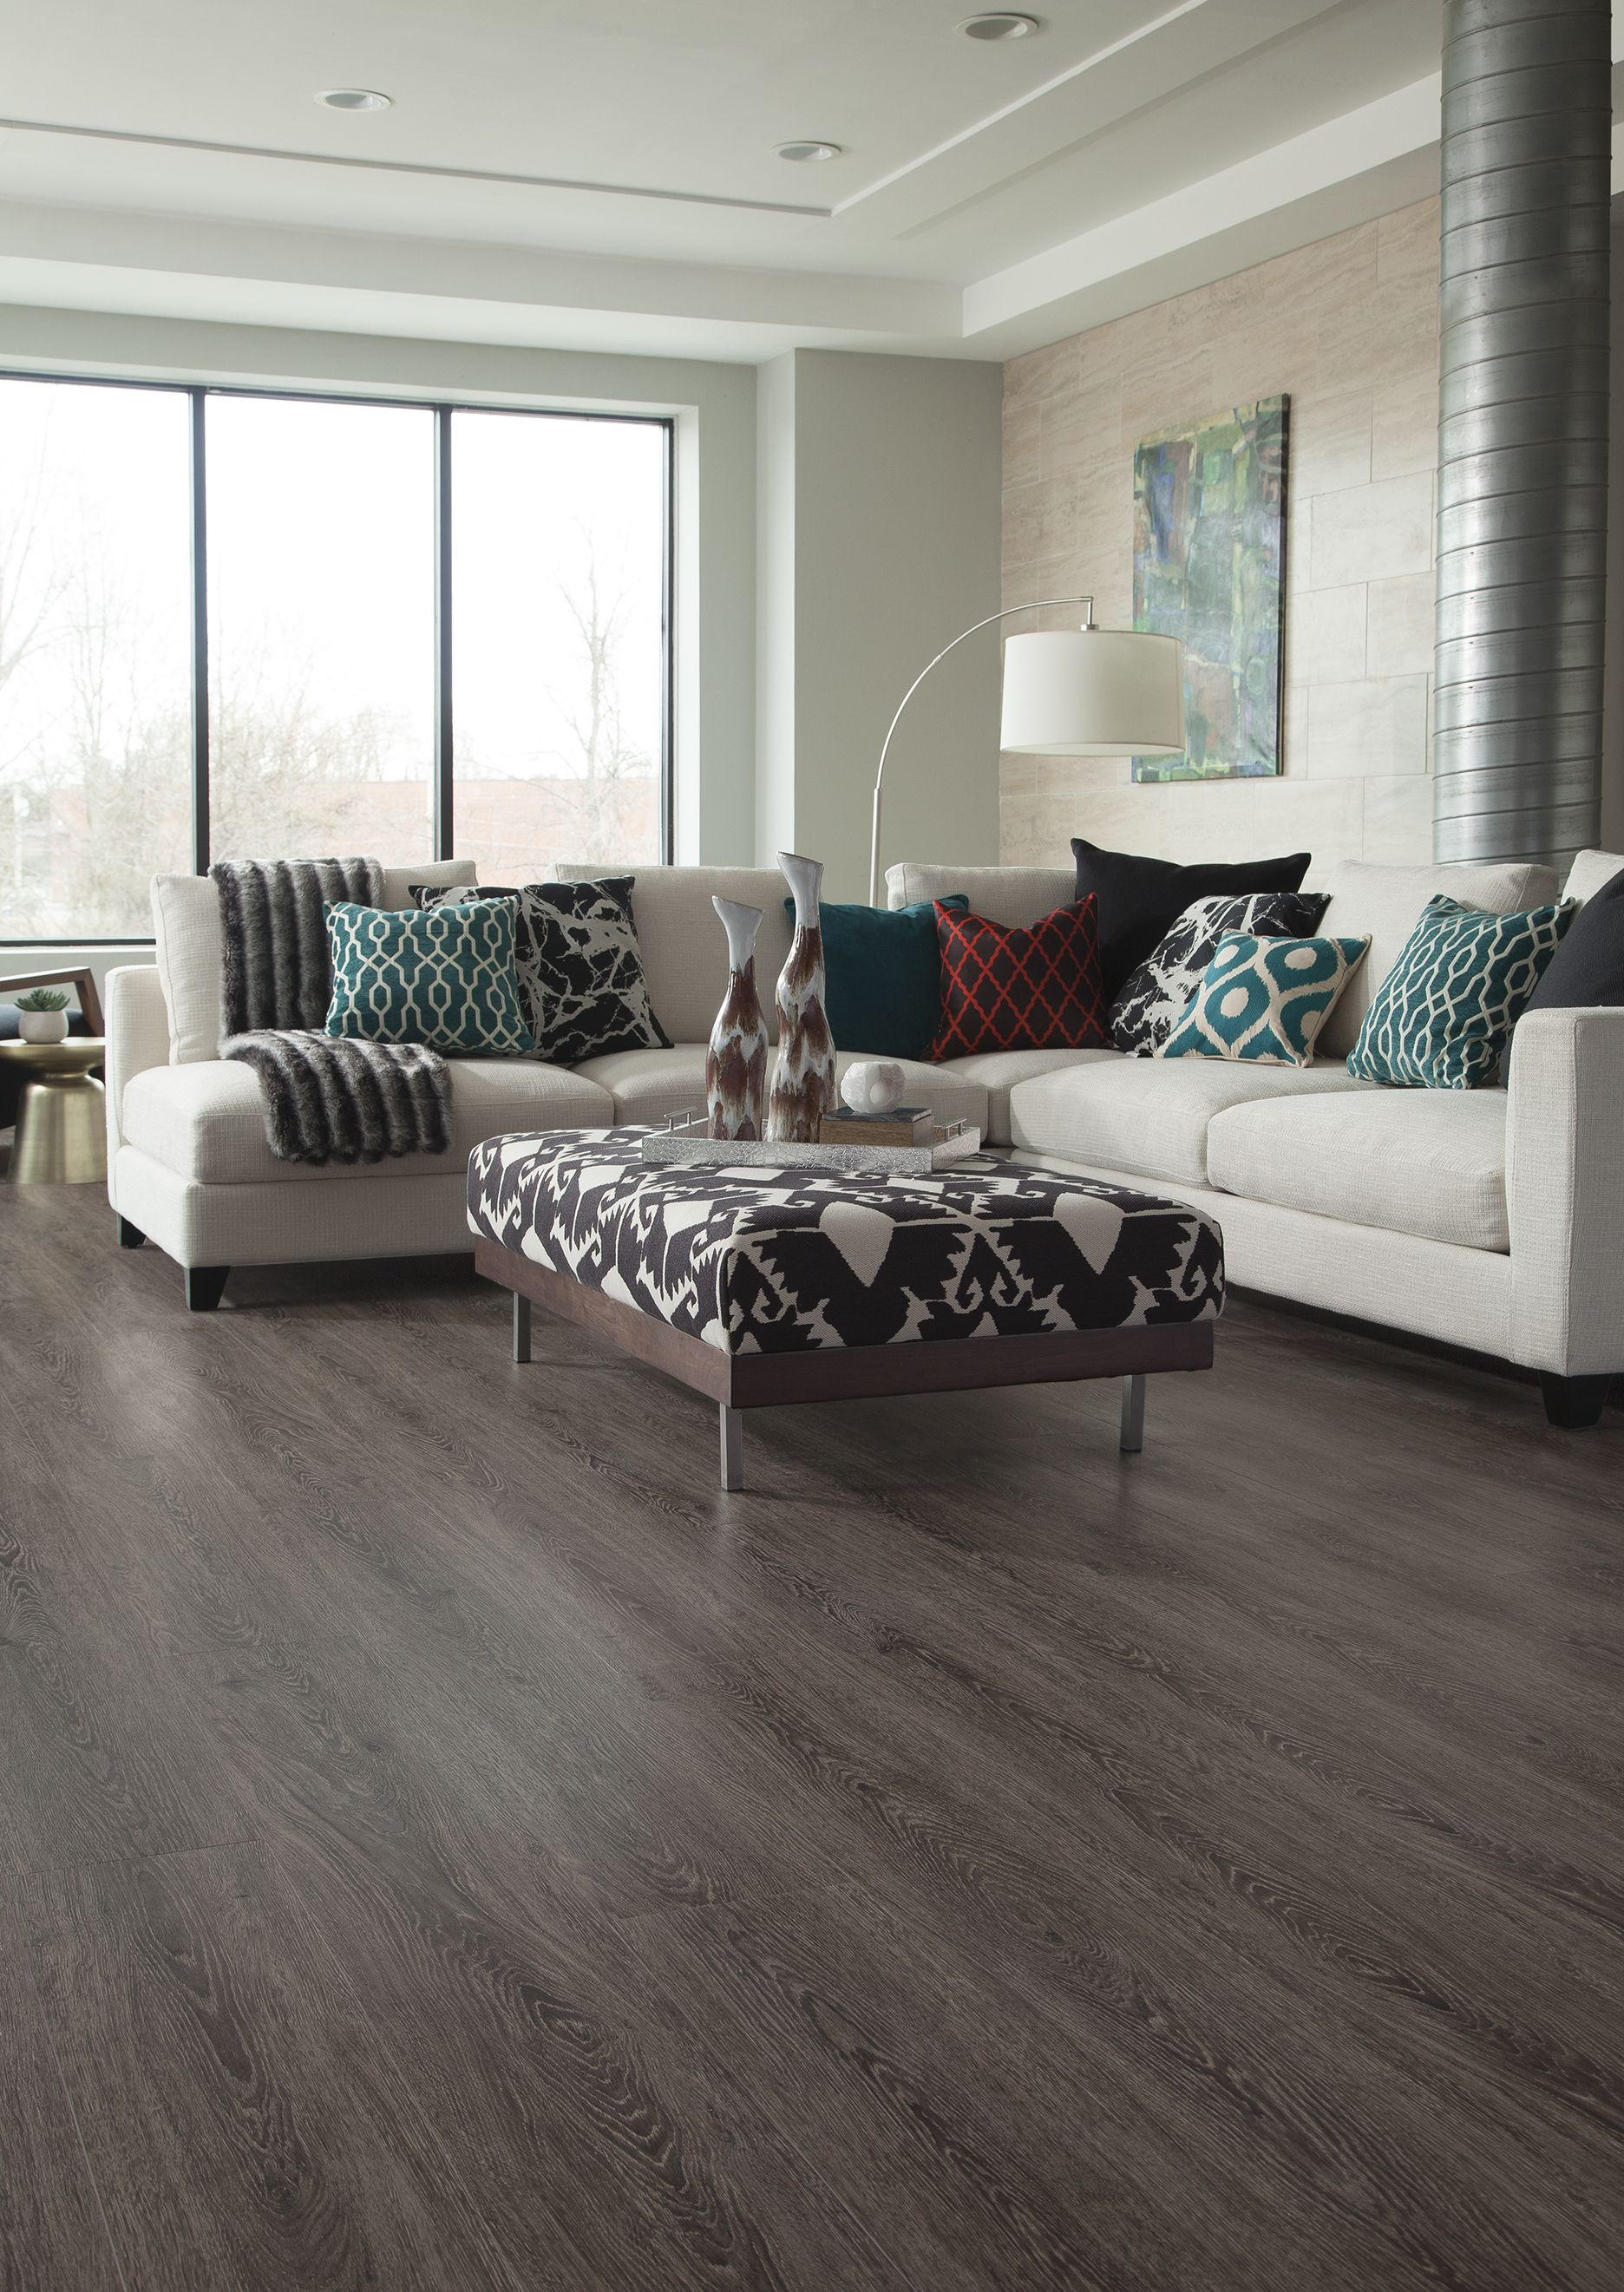 Pin on Lowe's Canada STAINMASTER® Luxury Vinyl